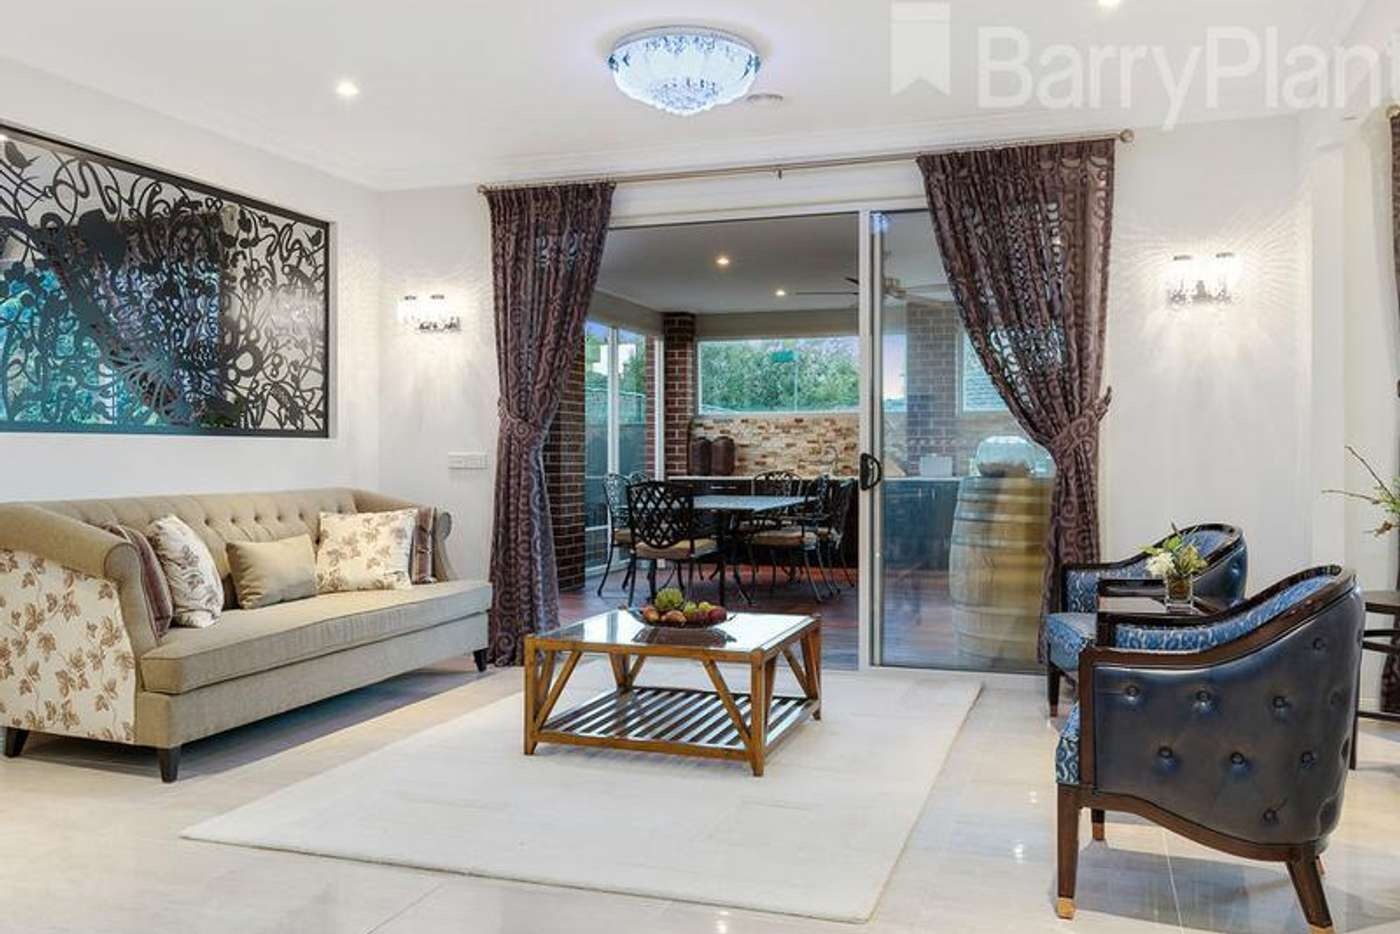 Fifth view of Homely house listing, 323 Gallaghers Road, Glen Waverley VIC 3150